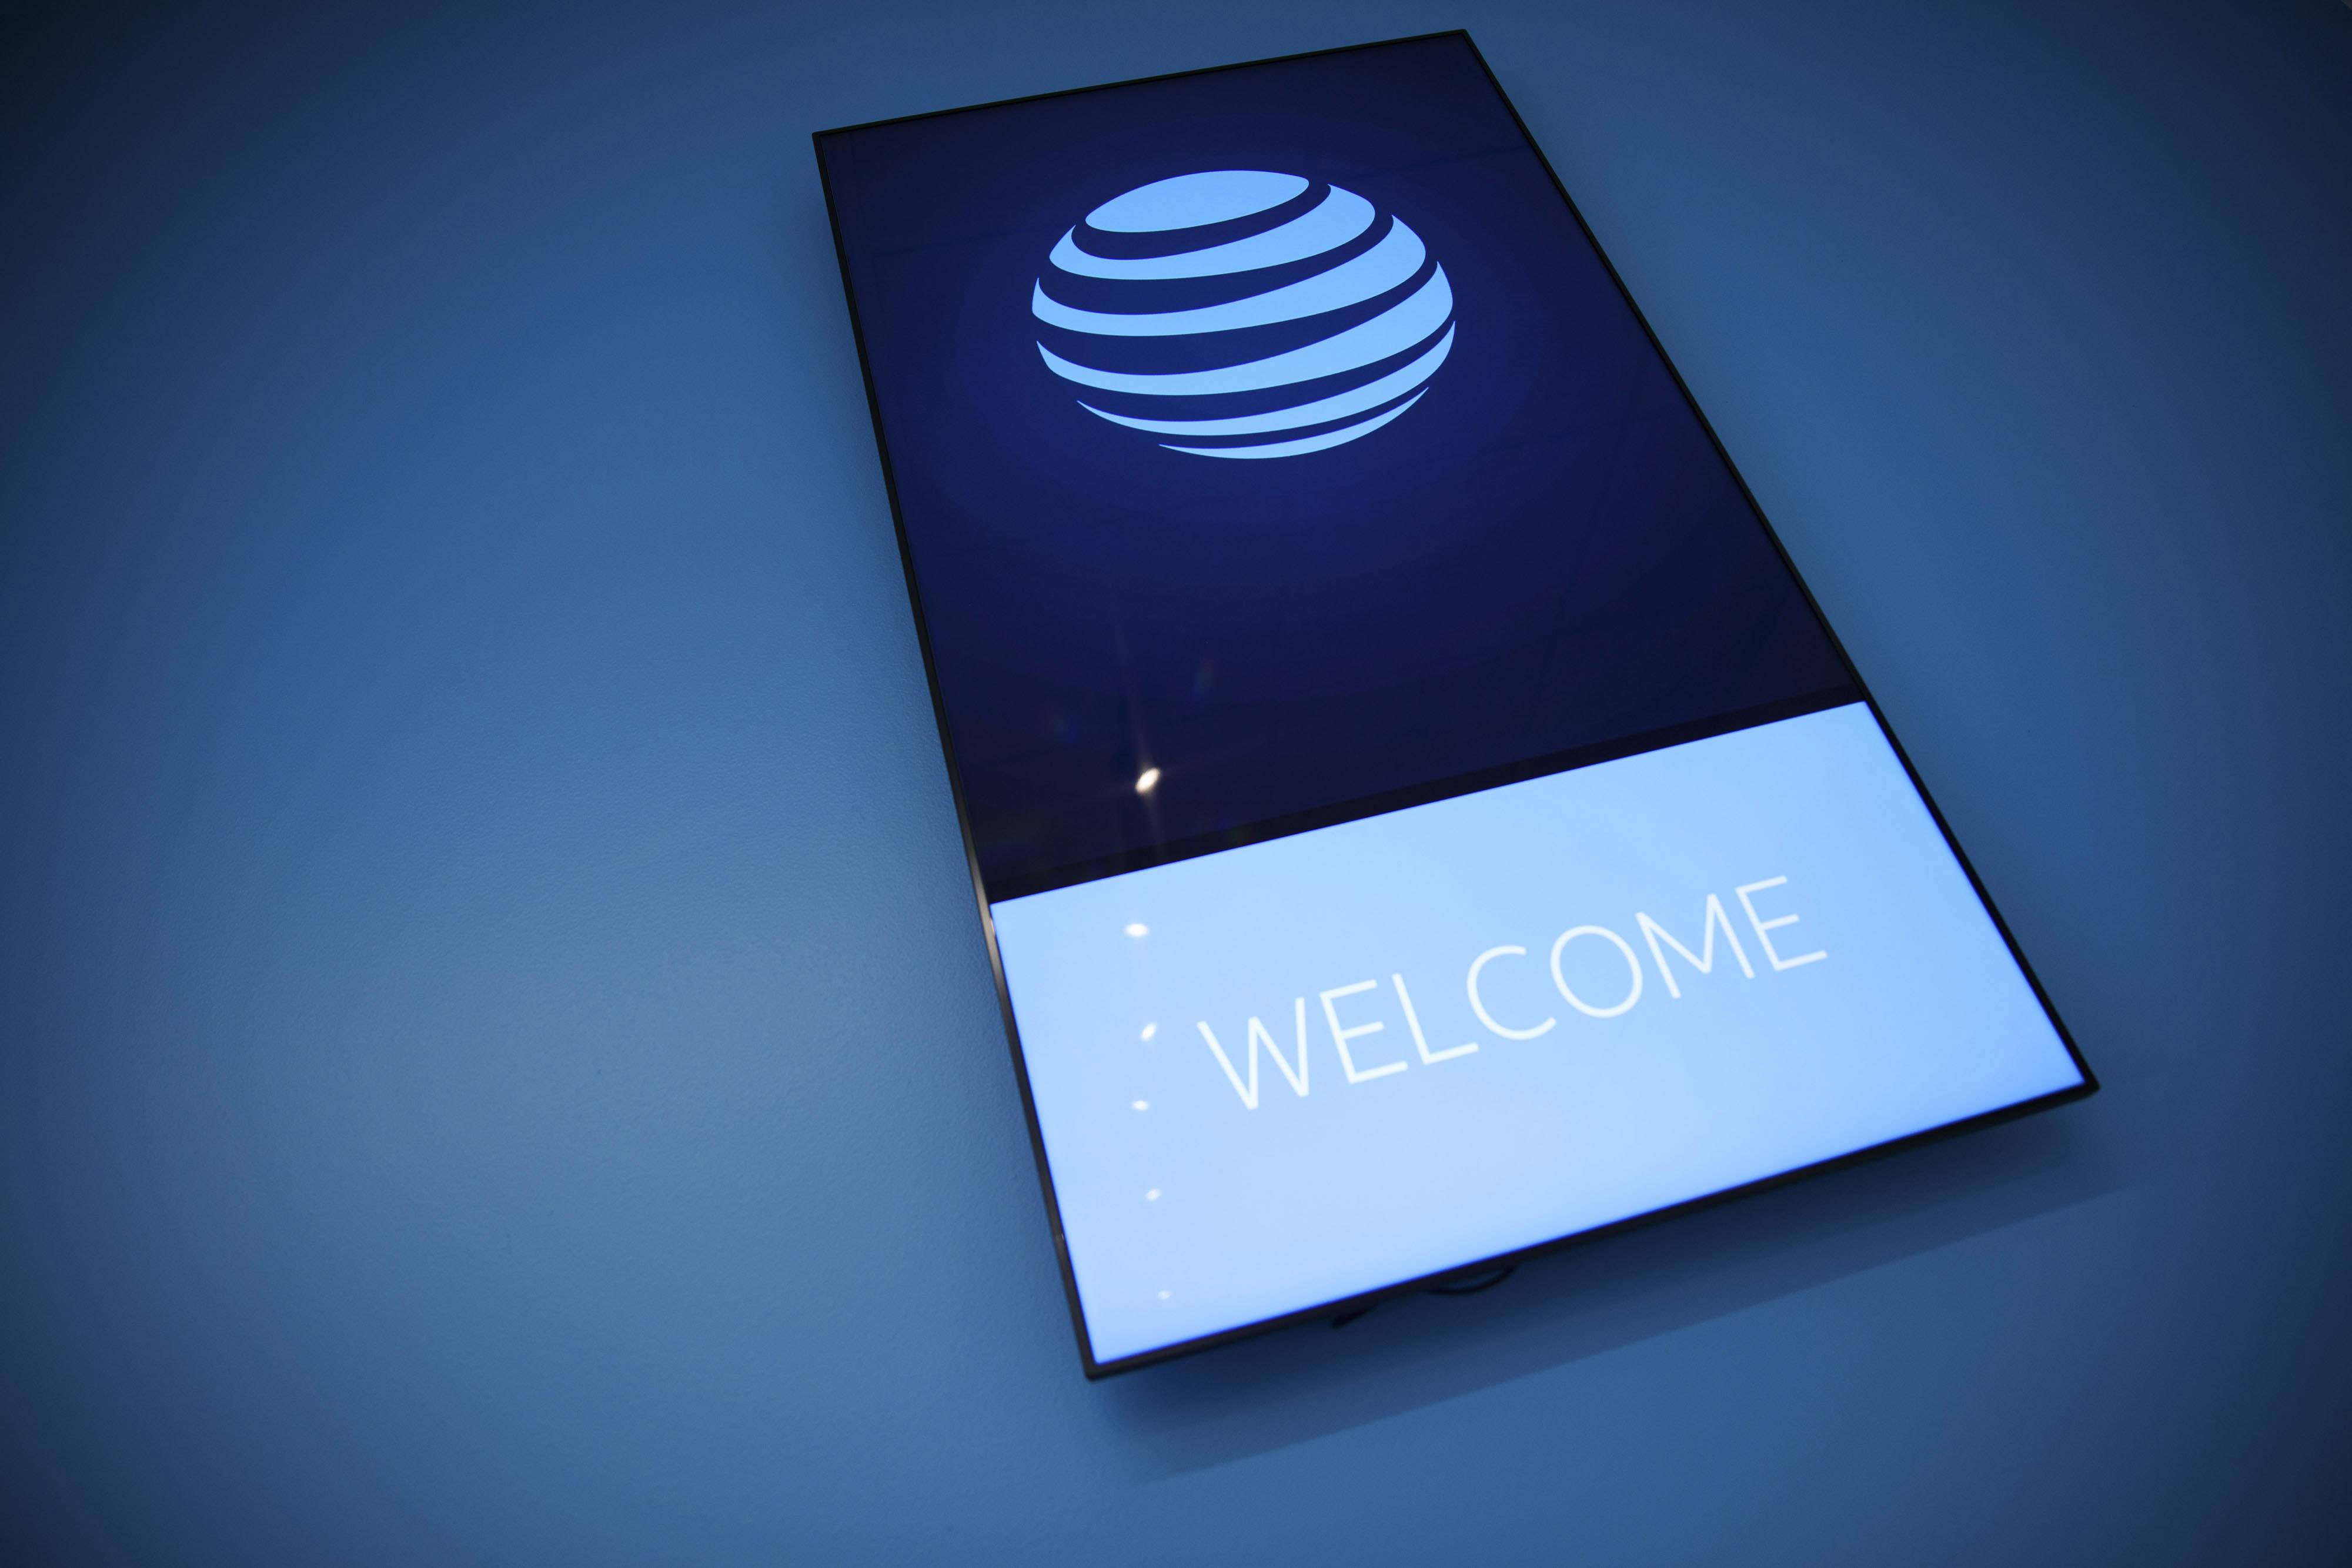 AT&T said it will introduce 5G mobile services in more than a dozen U.S. cities later this year.